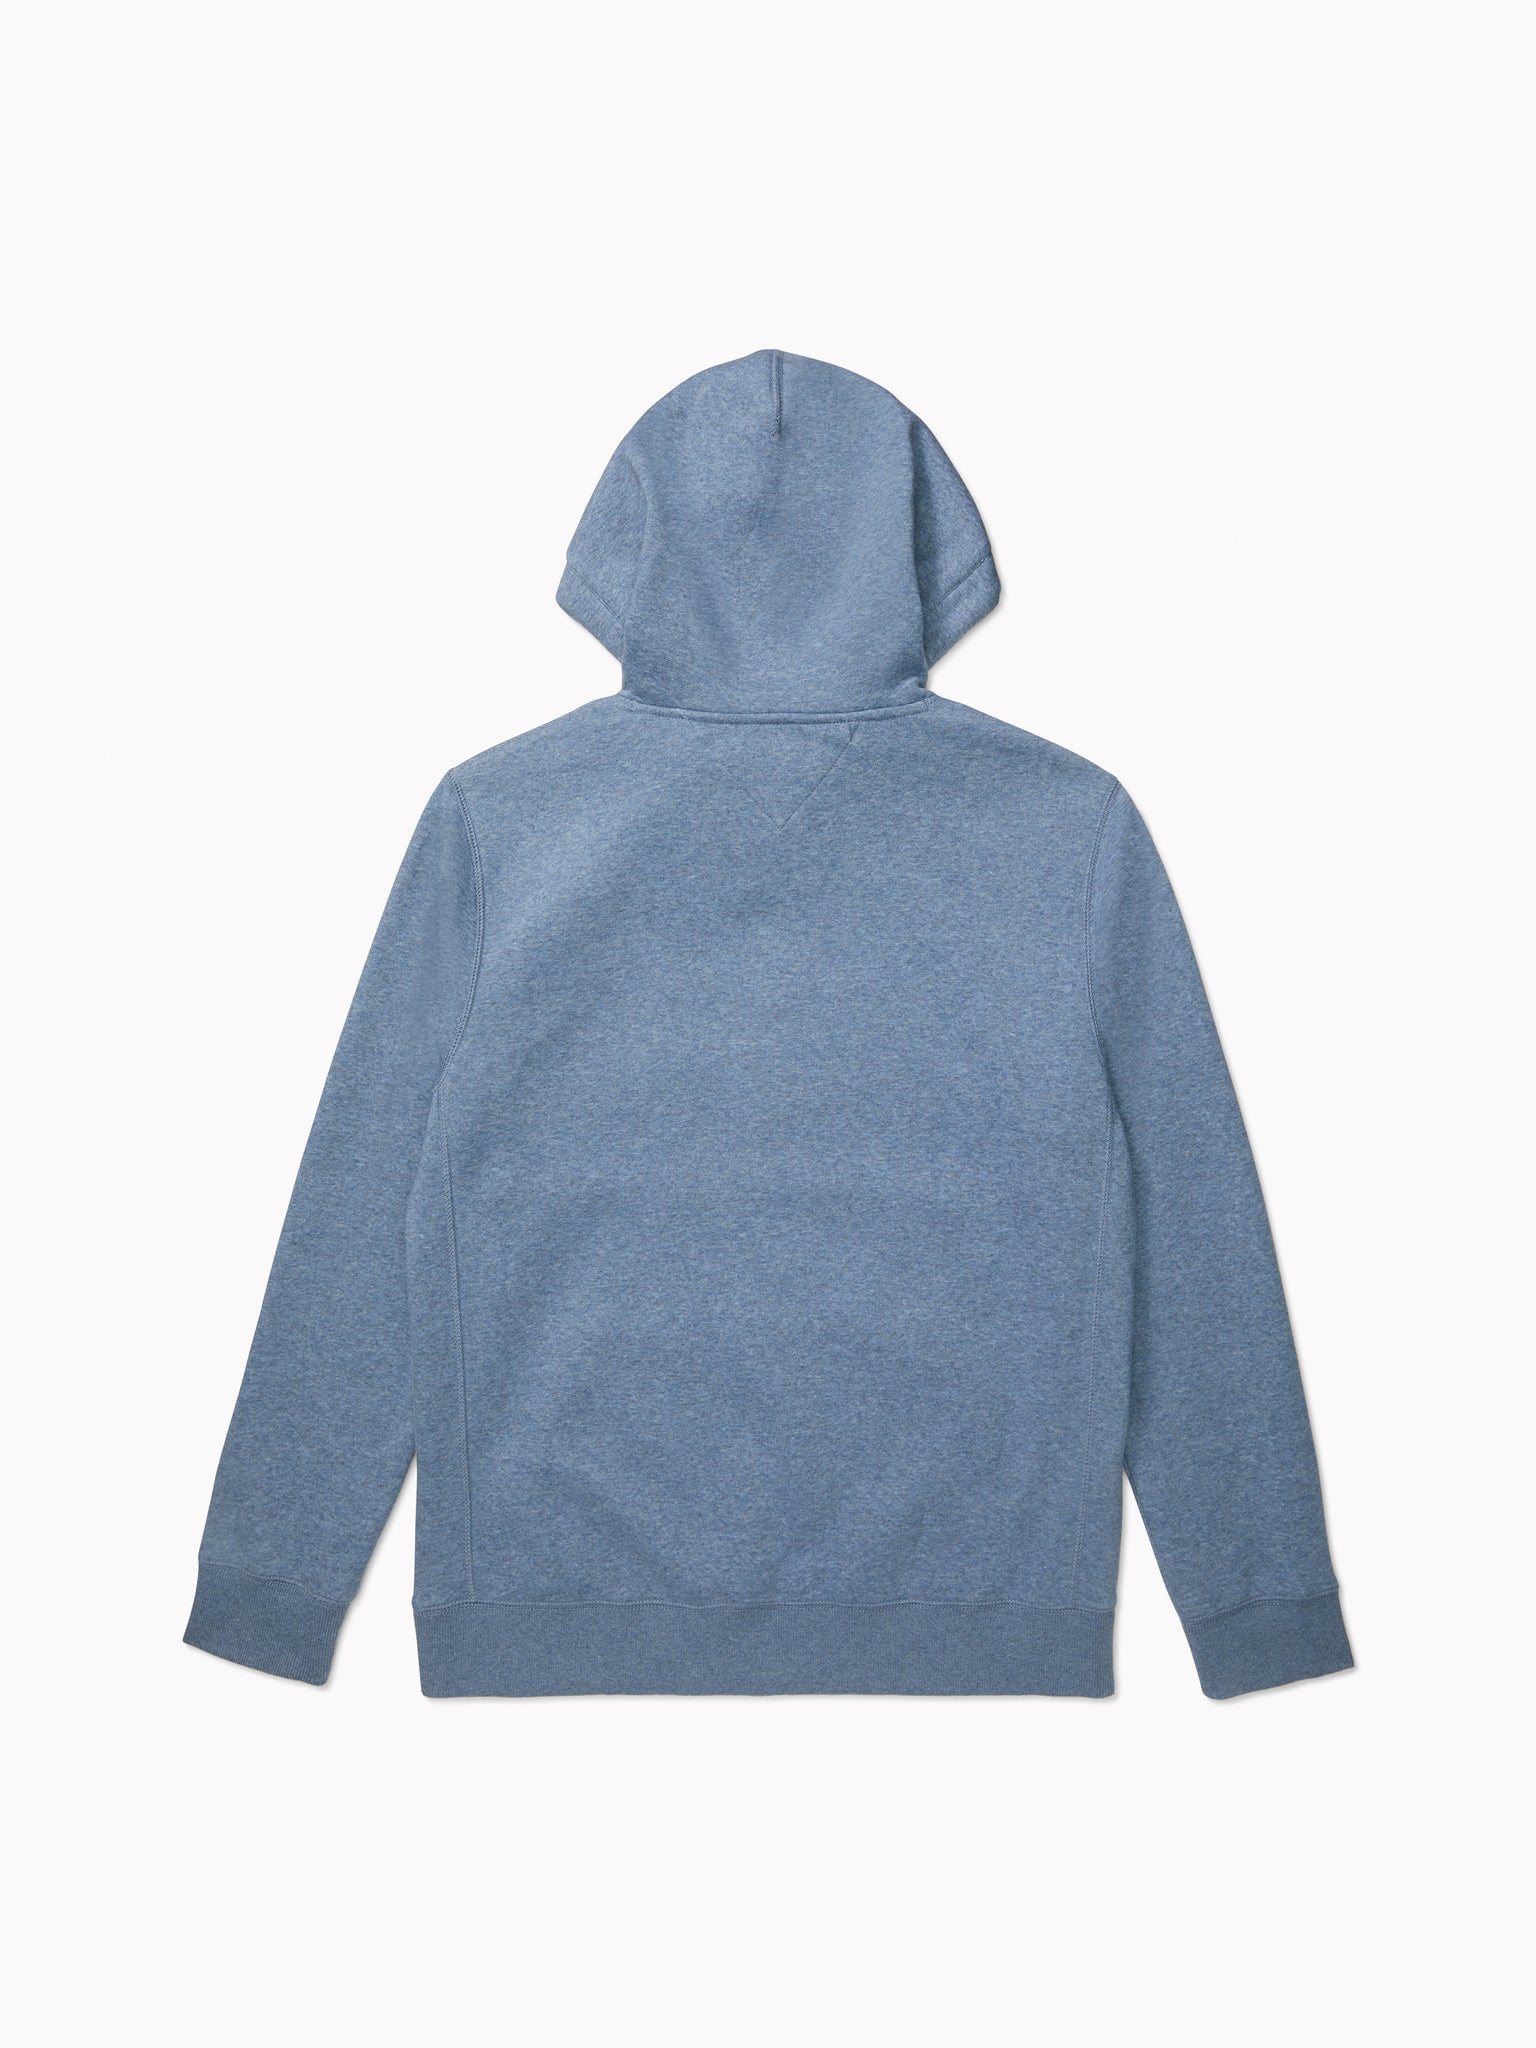 TH Quinn Hoodie (Mens) - Fleet Blue Heather